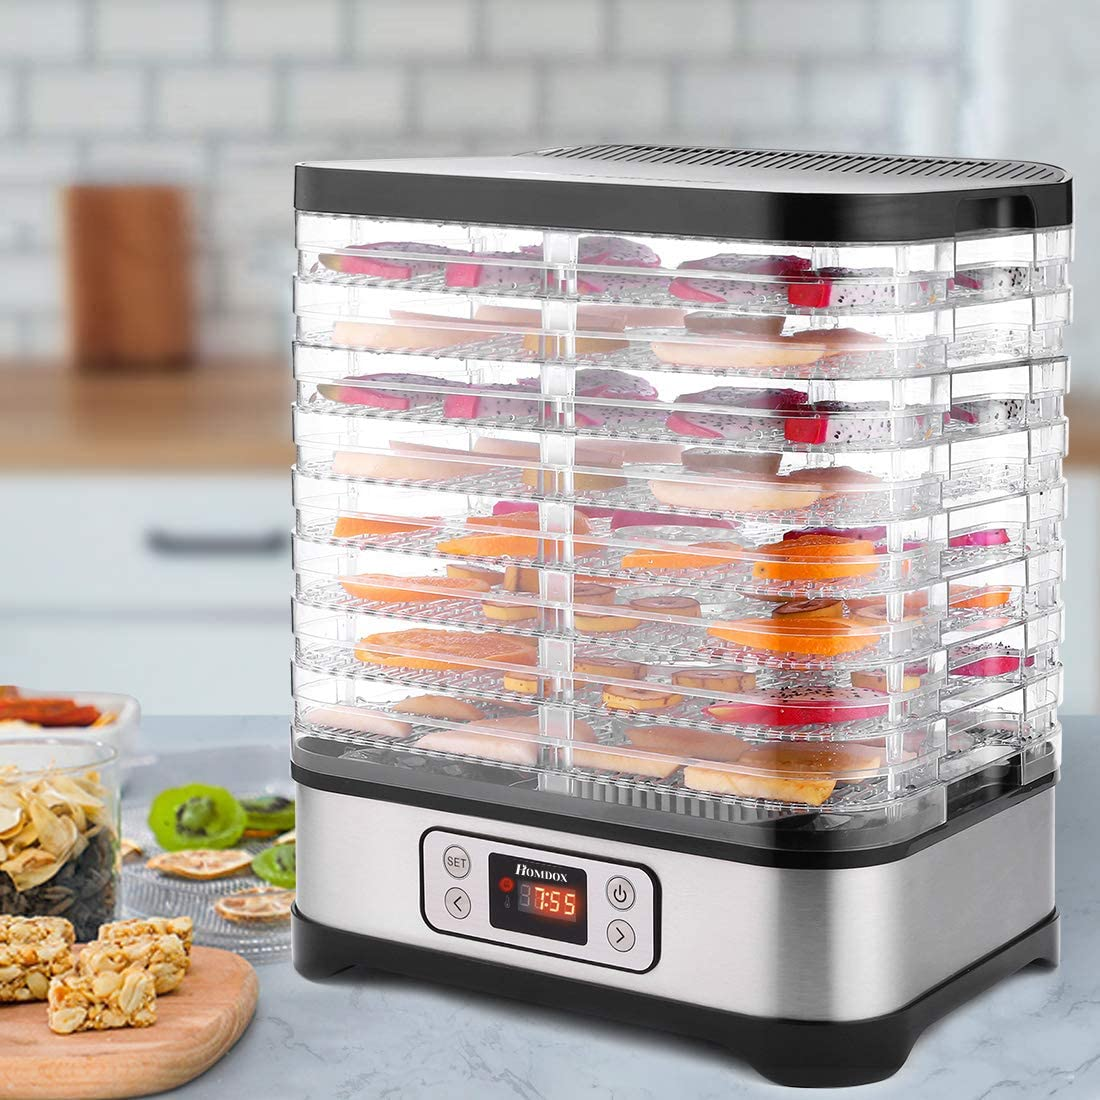 Amazon: Food Dehydrator Machine, Digital Timer and Temperature Control, Just $69.99 (Reg $99.99) after code!